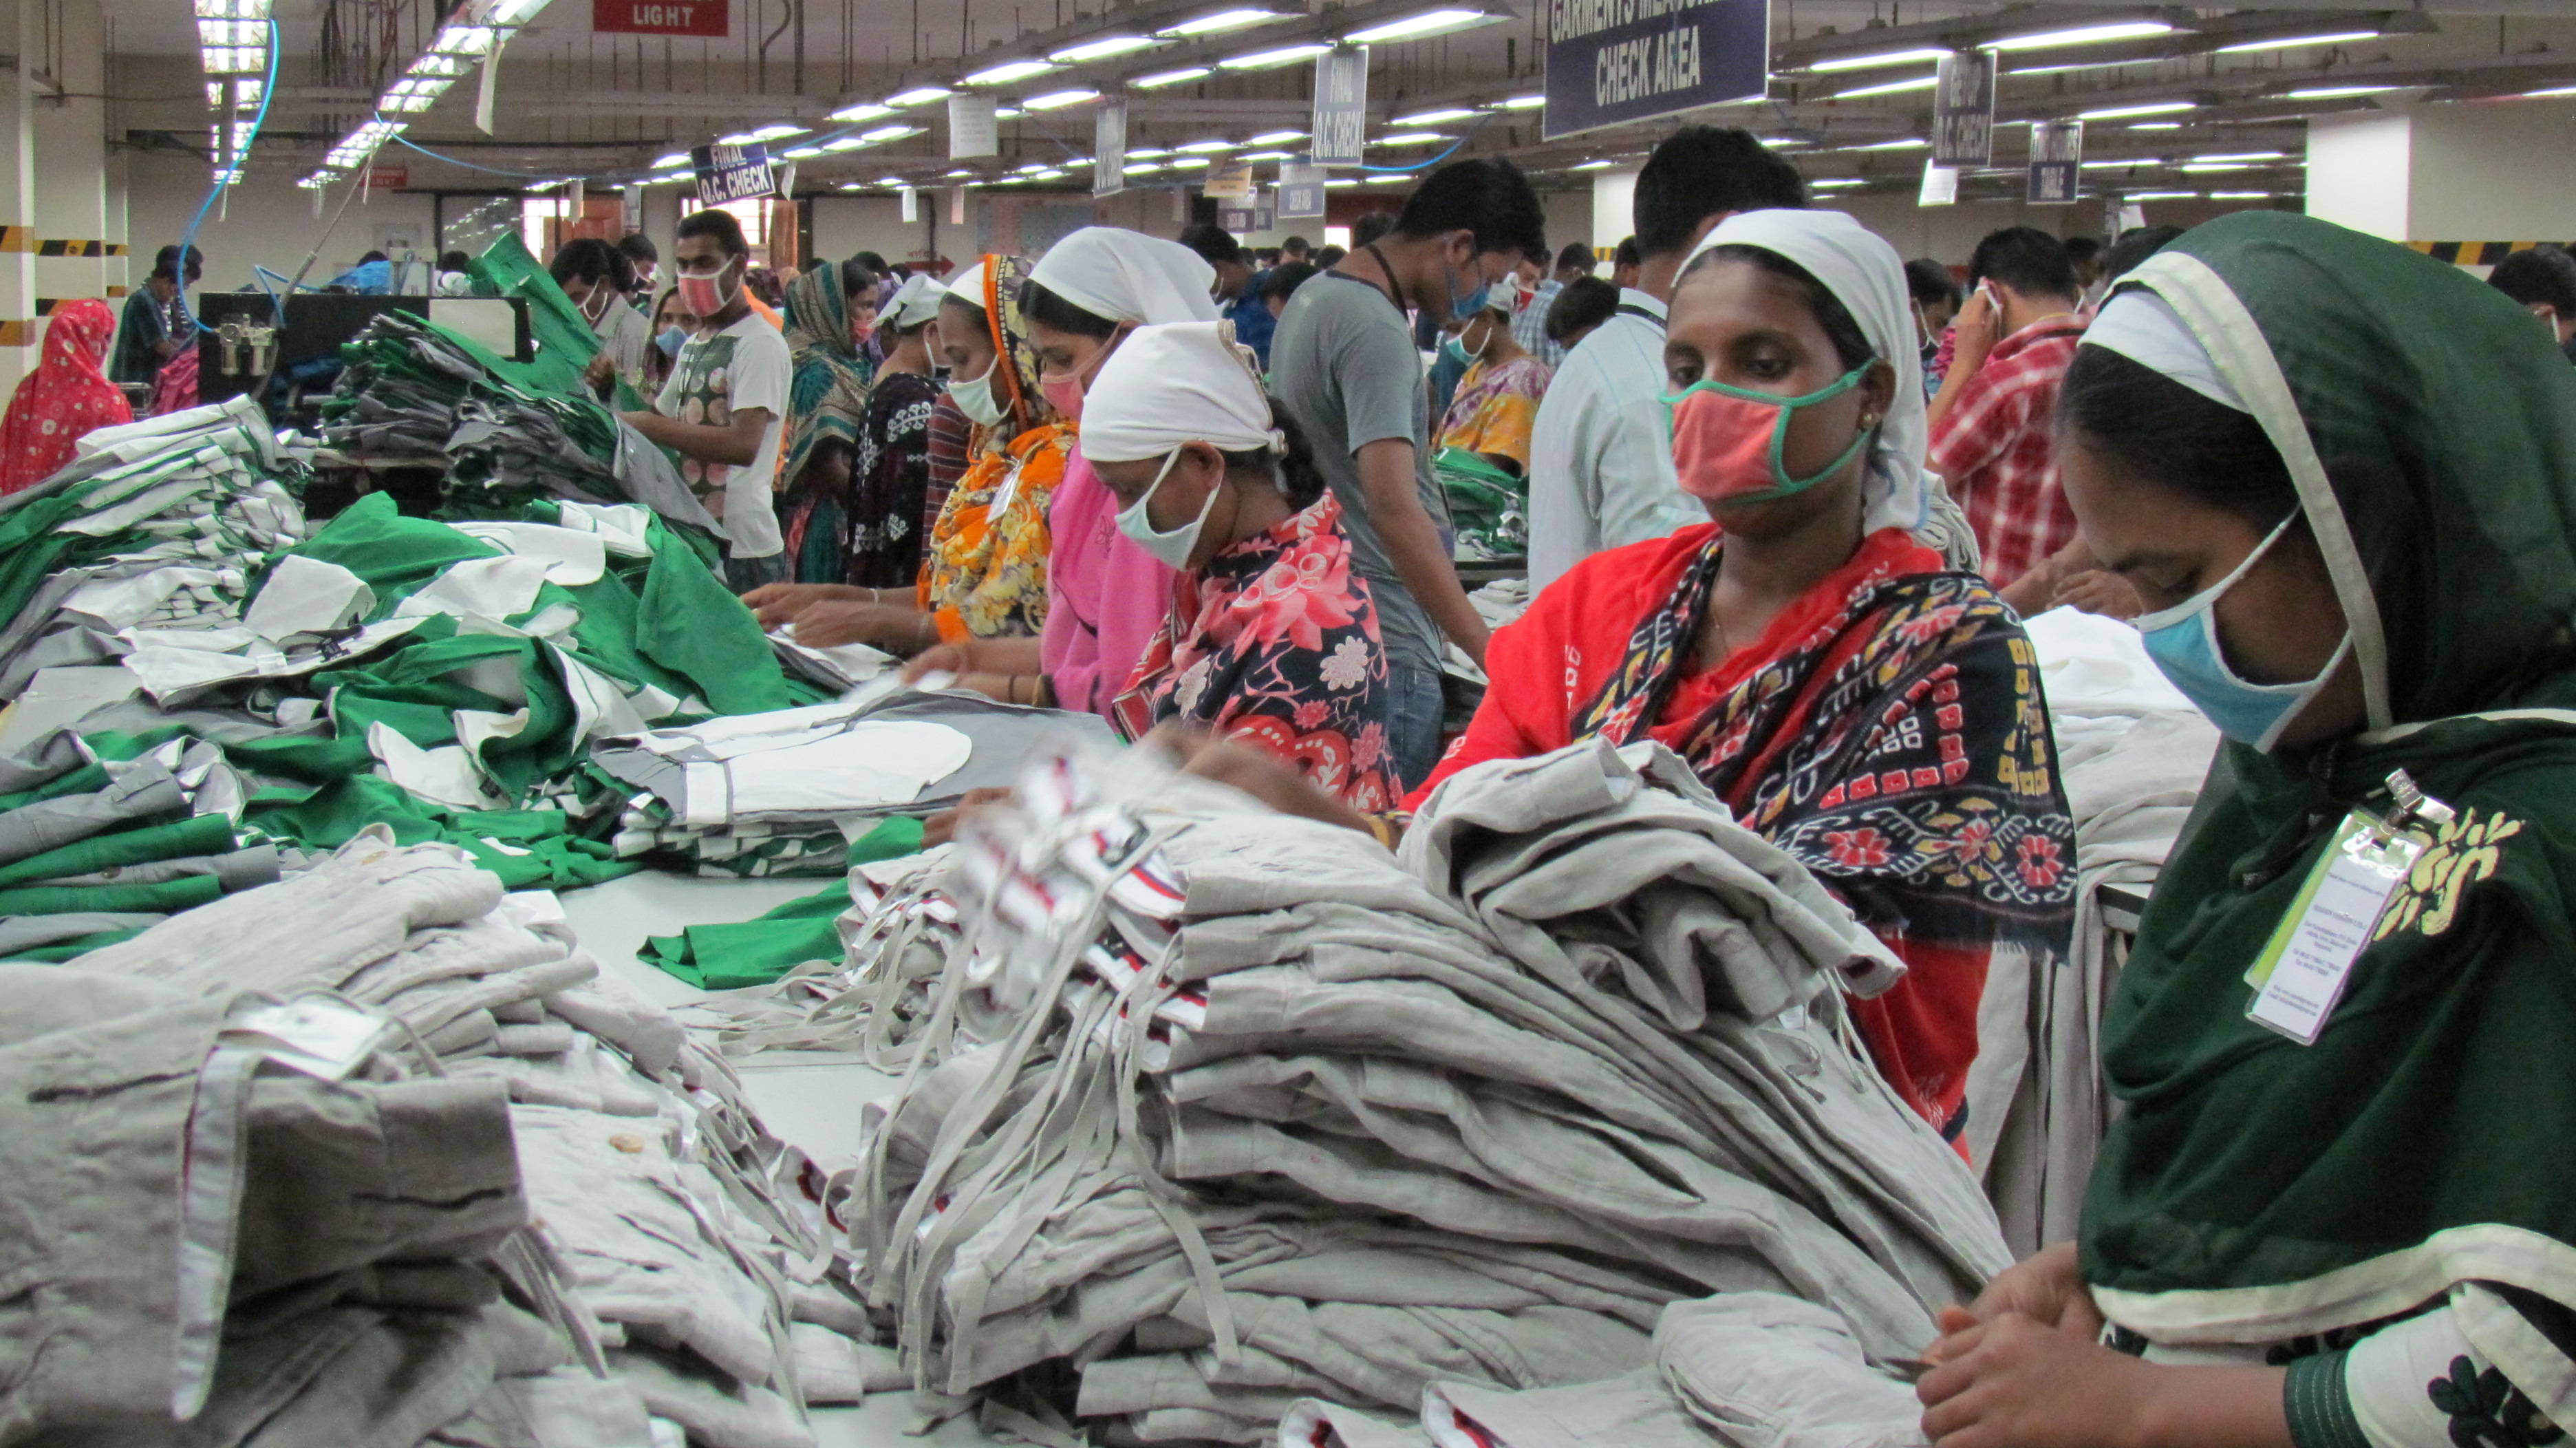 Watch - BGMEA takes action against Bangladesh factories video